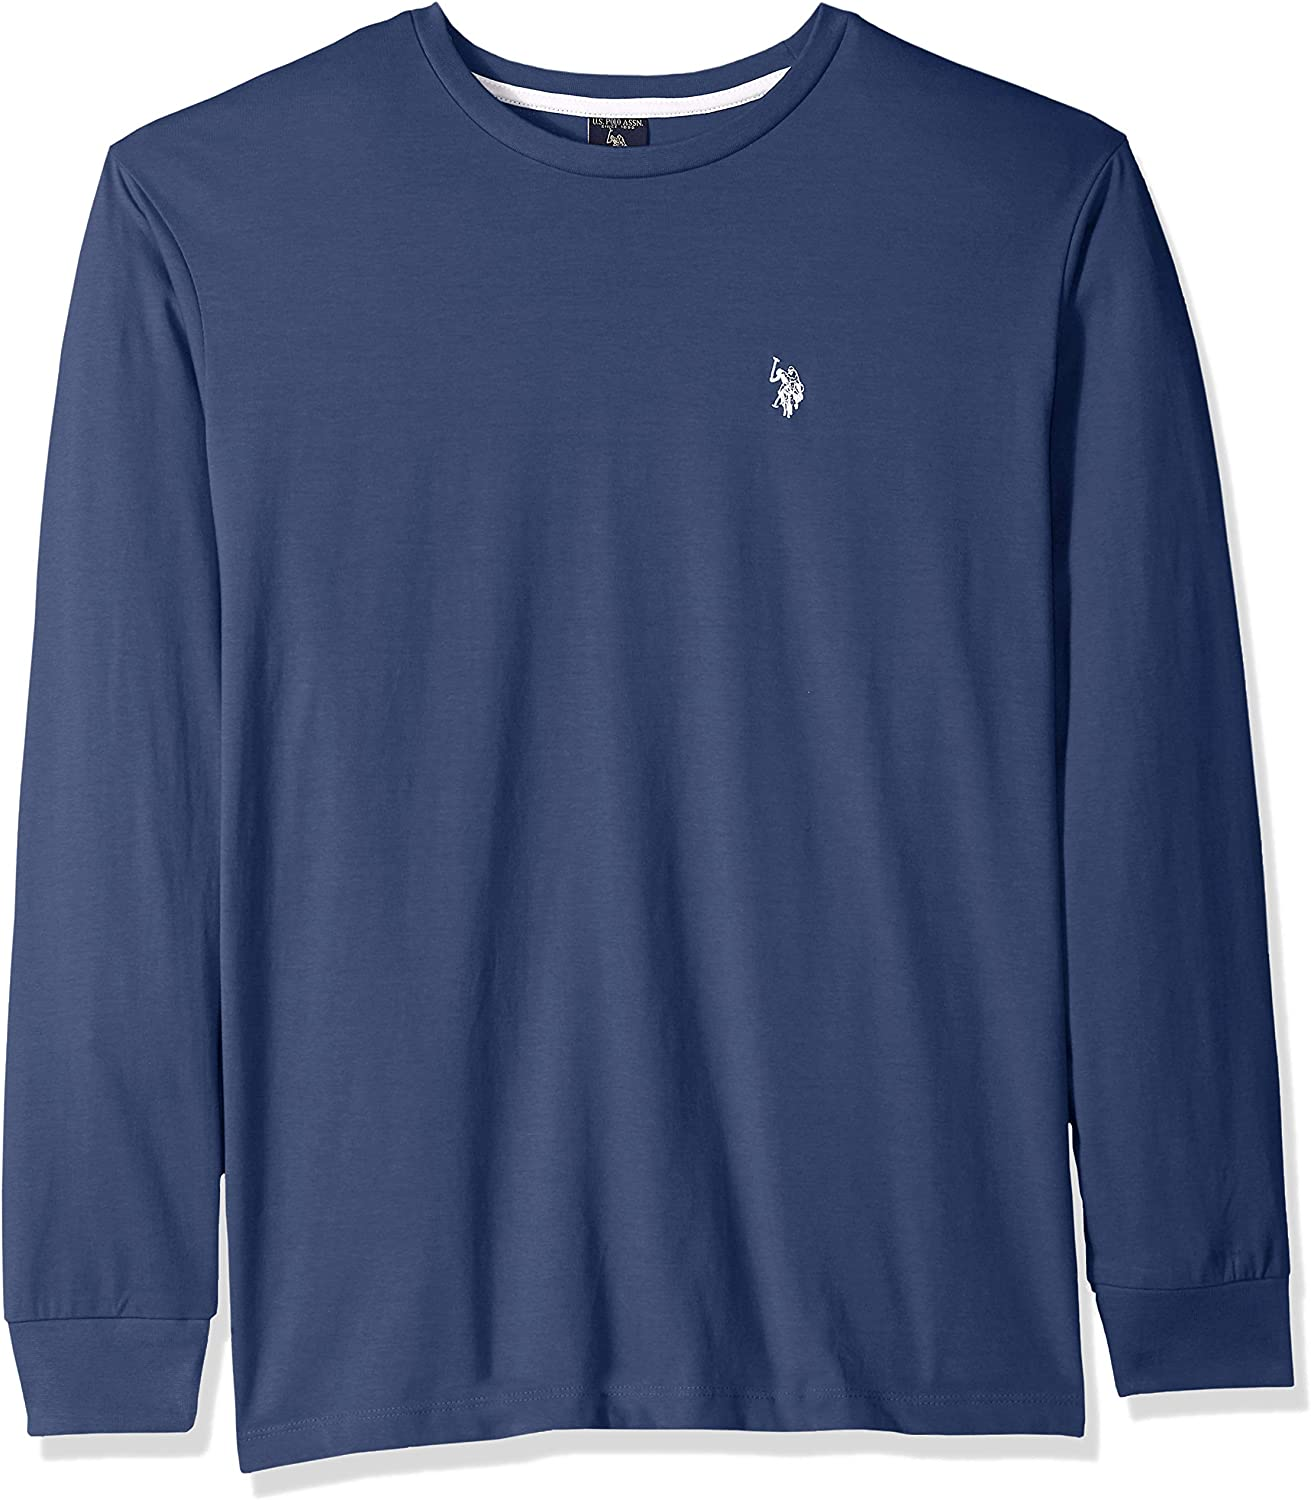 Boys/' Long Sleeve Solid Crew Neck Thermal 6 Colors to choose Polo Assn NWT U.S